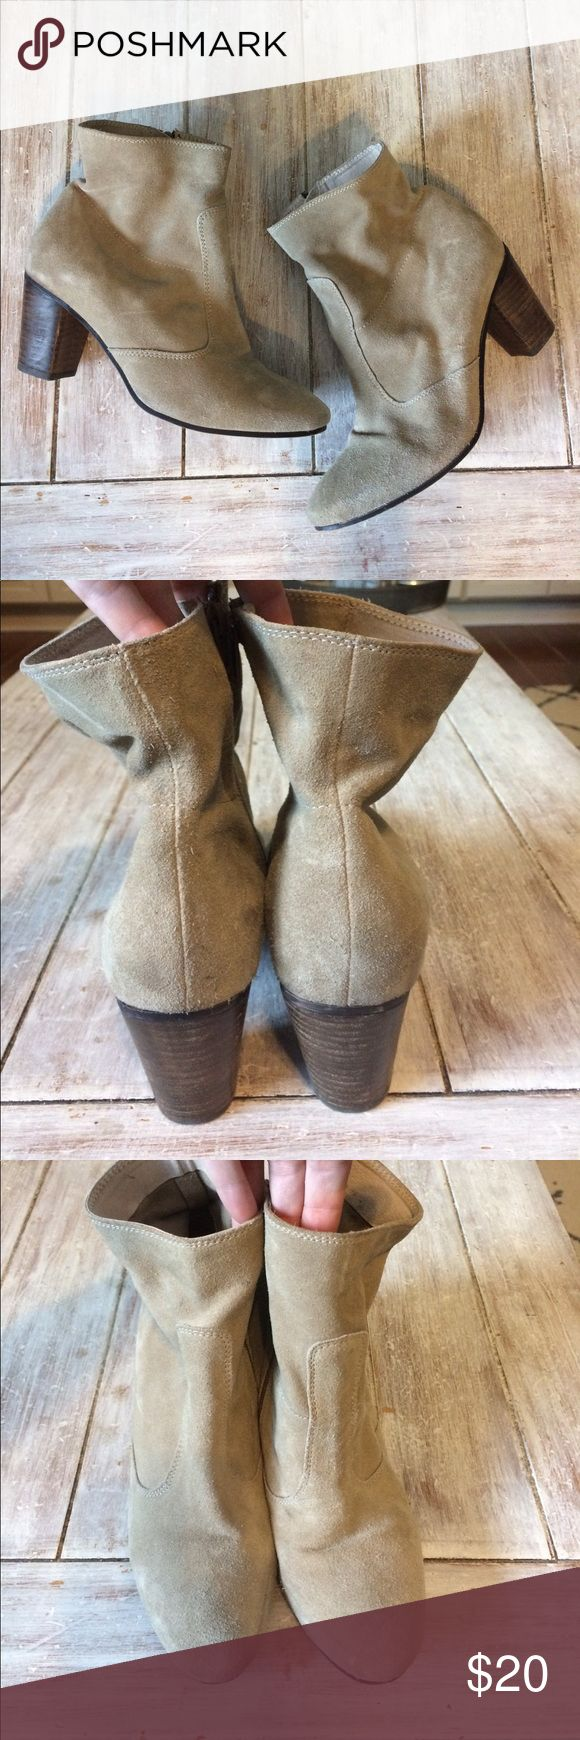 Tan suede Seychelles boots Tan suede heeled boots Shoes Ankle Boots & Booties